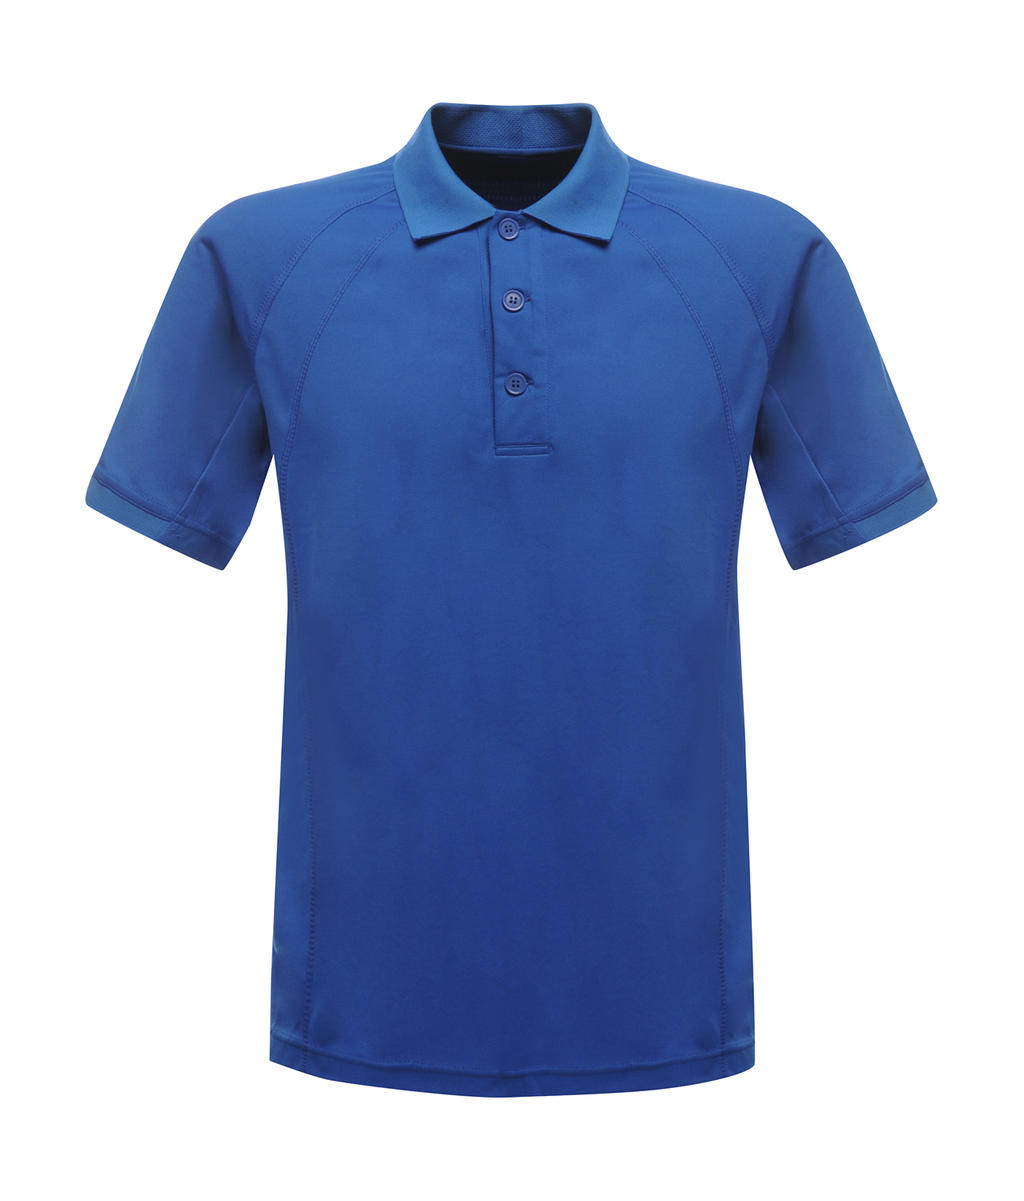 Regatta Coolweave Wicking Polo